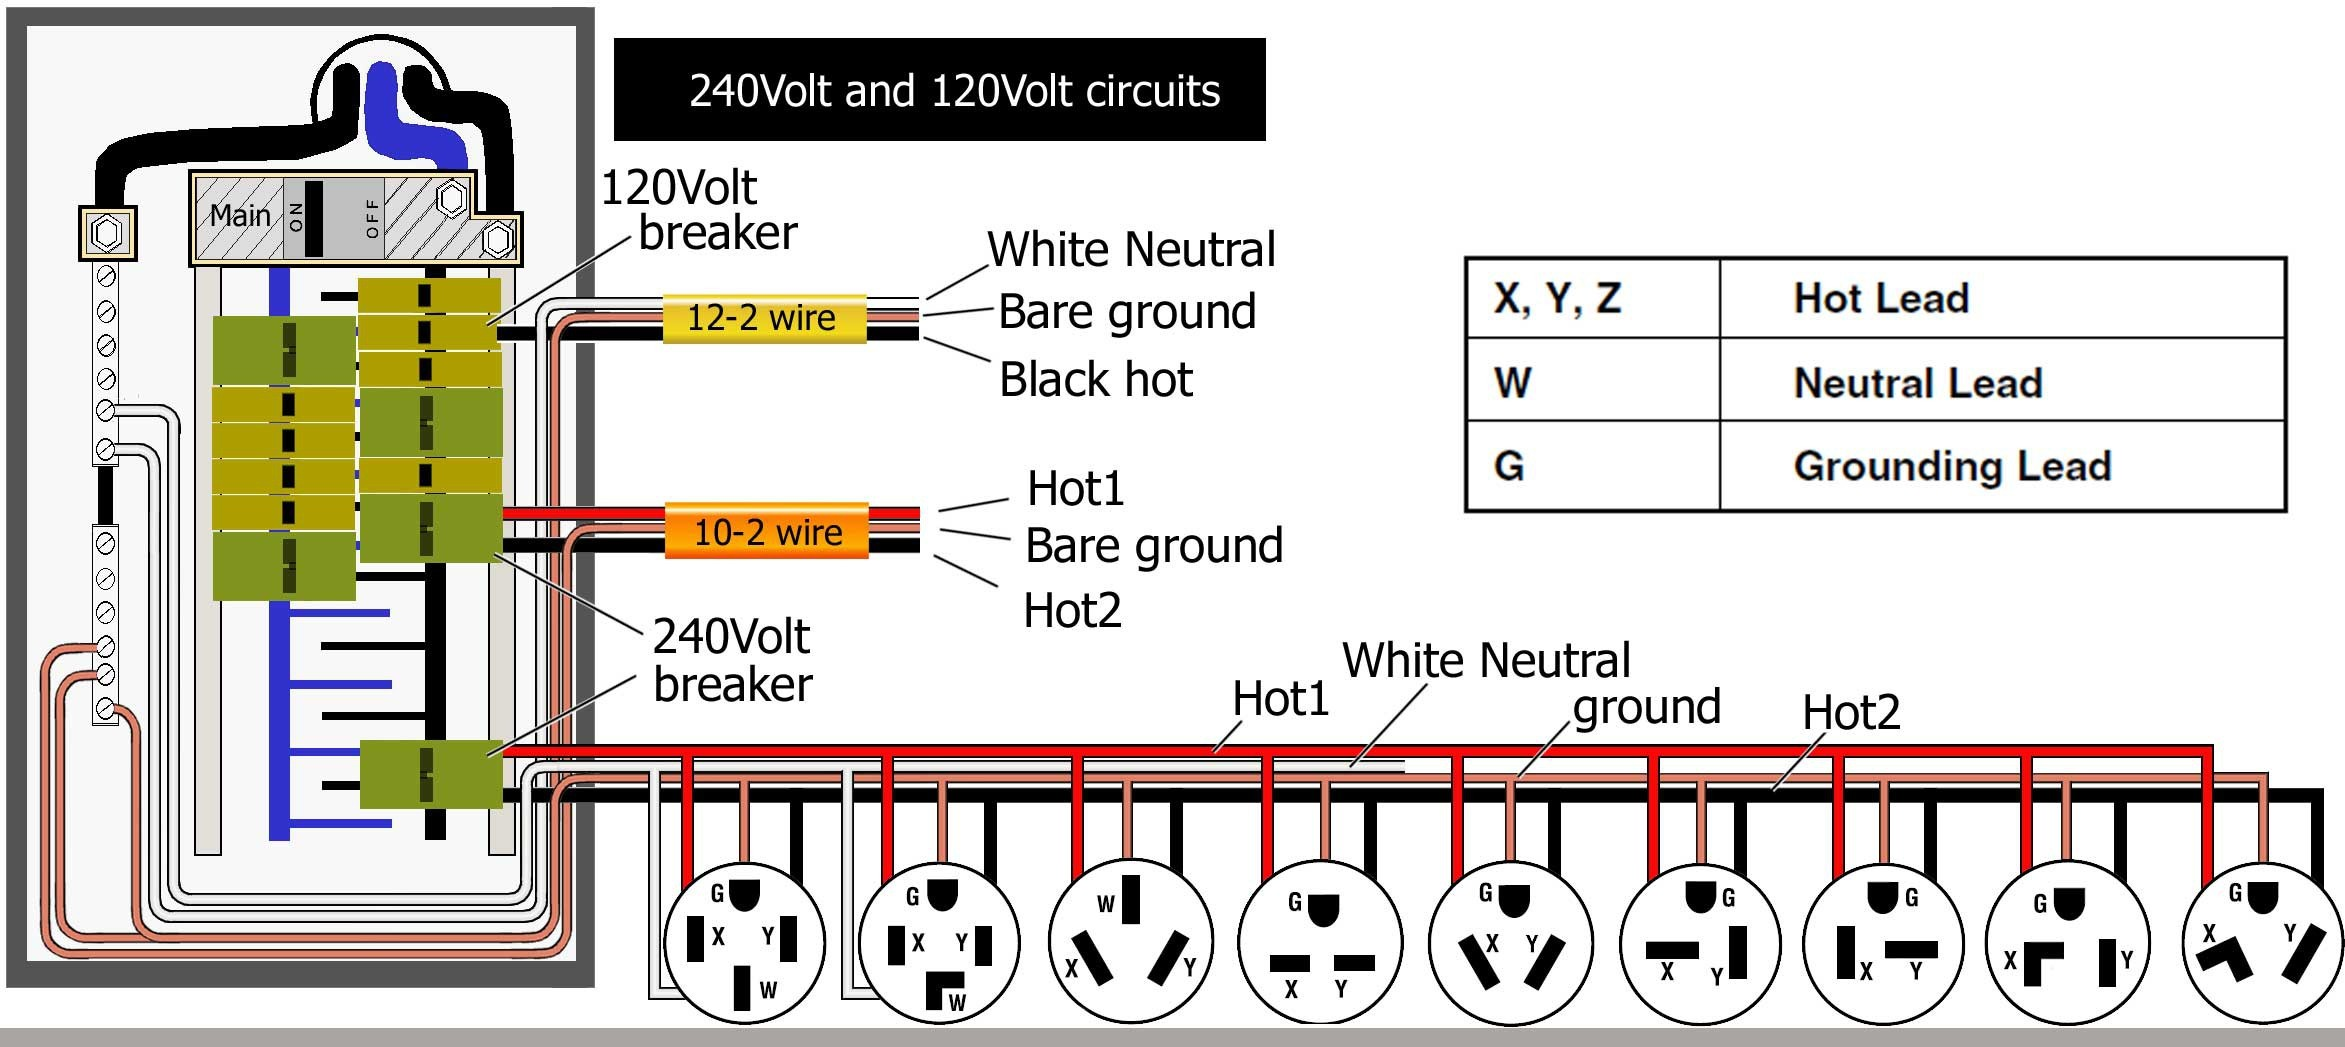 4 Prong Twist Lock Plug Wiring Diagram New How to Wire 240 Volt Outlets and Plugs